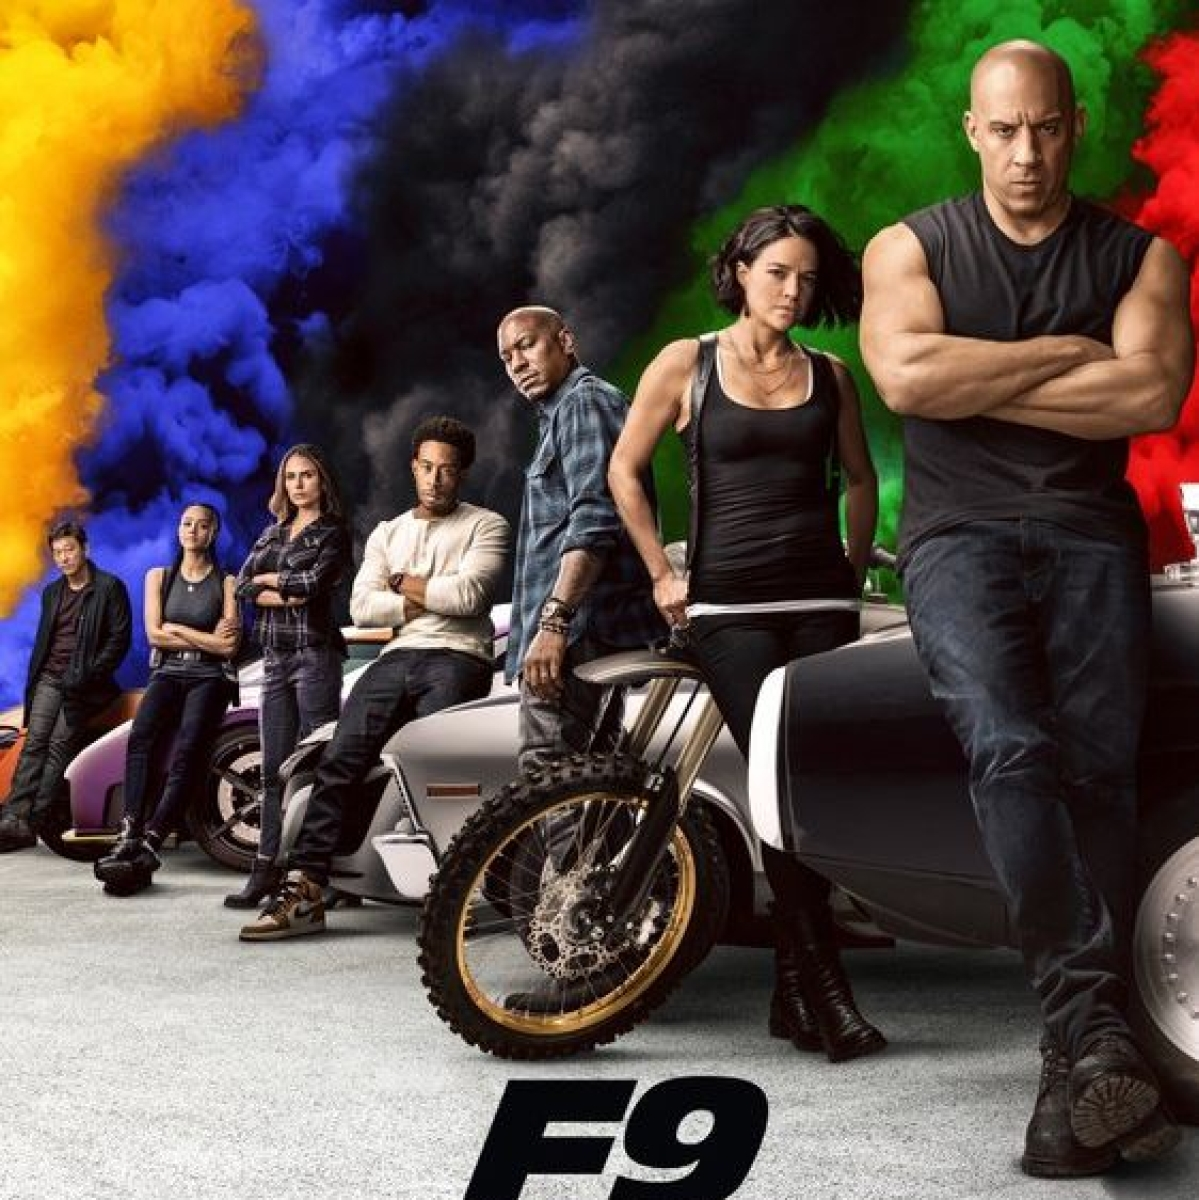 'Fast and Furious 9' release date pushed to April 2021 amid coronavirus outbreak